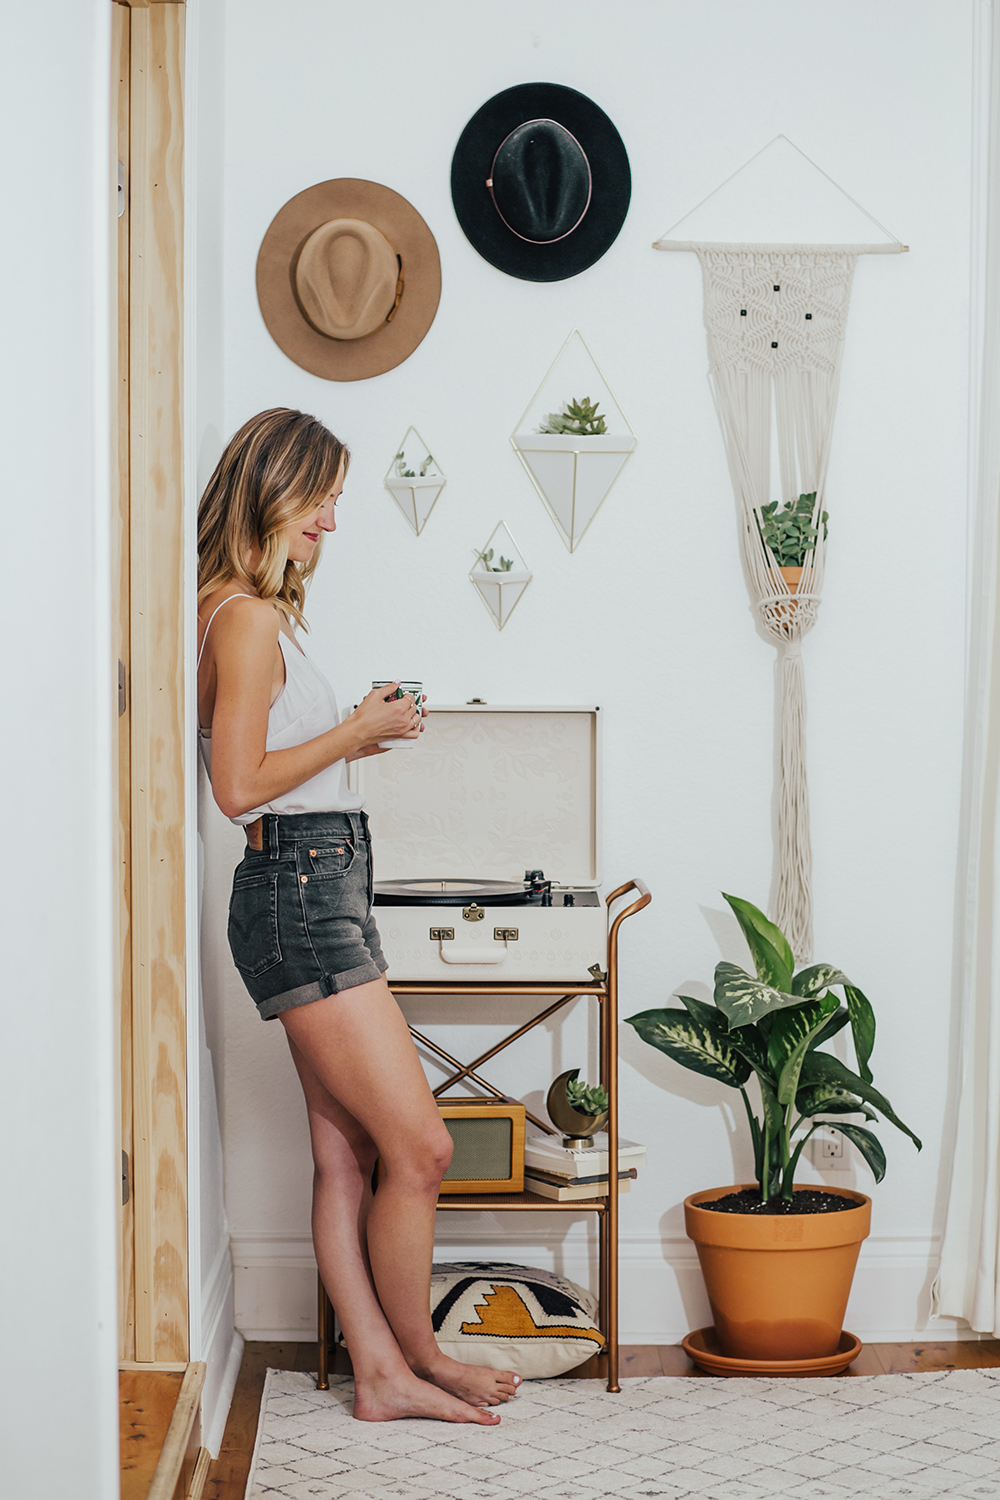 livvyland-blog-olivia-watson-austin-texas-fashion-blogger-urban-outfitters-record-player-nook-room-setup-holder-interior-boho-style-levis-wedgie-shorts-7